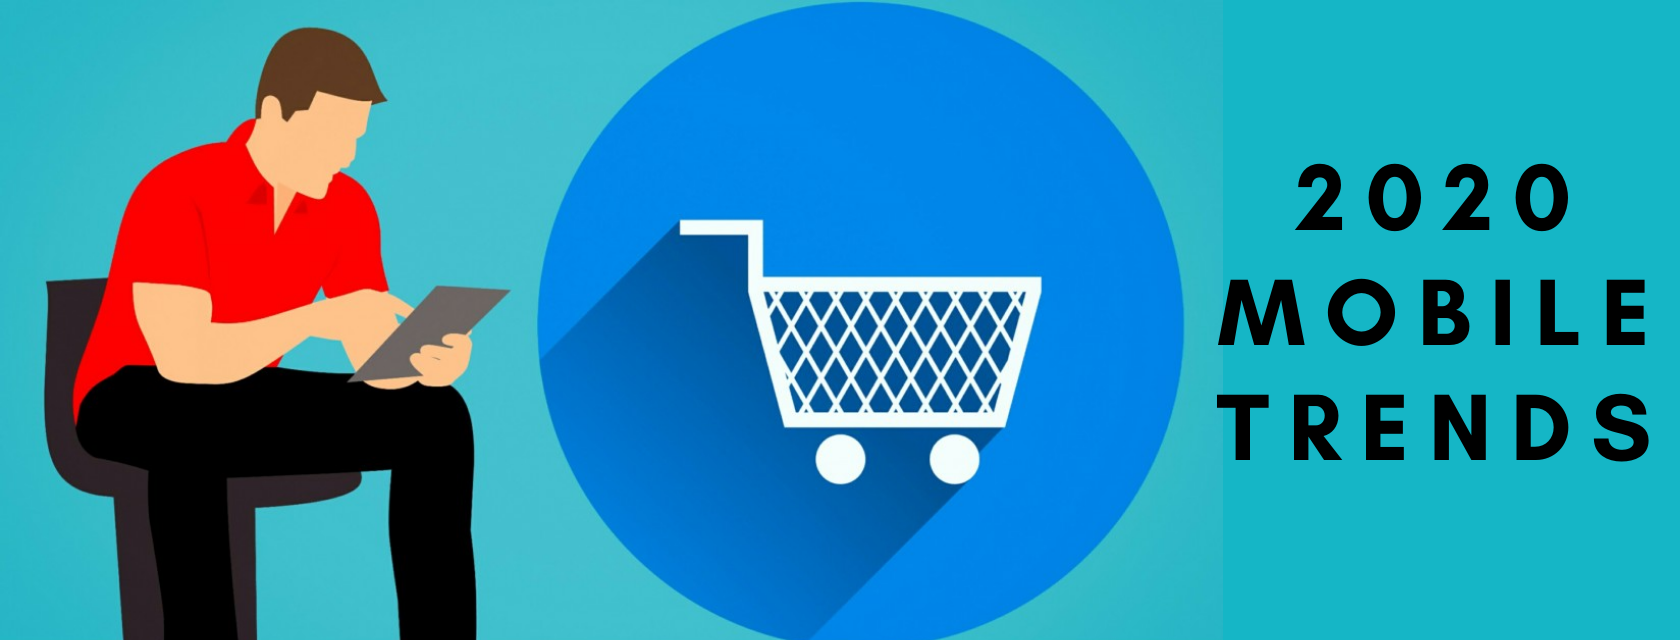 Key mobile trends for the year 2020 that every eCommerce retailer should know.